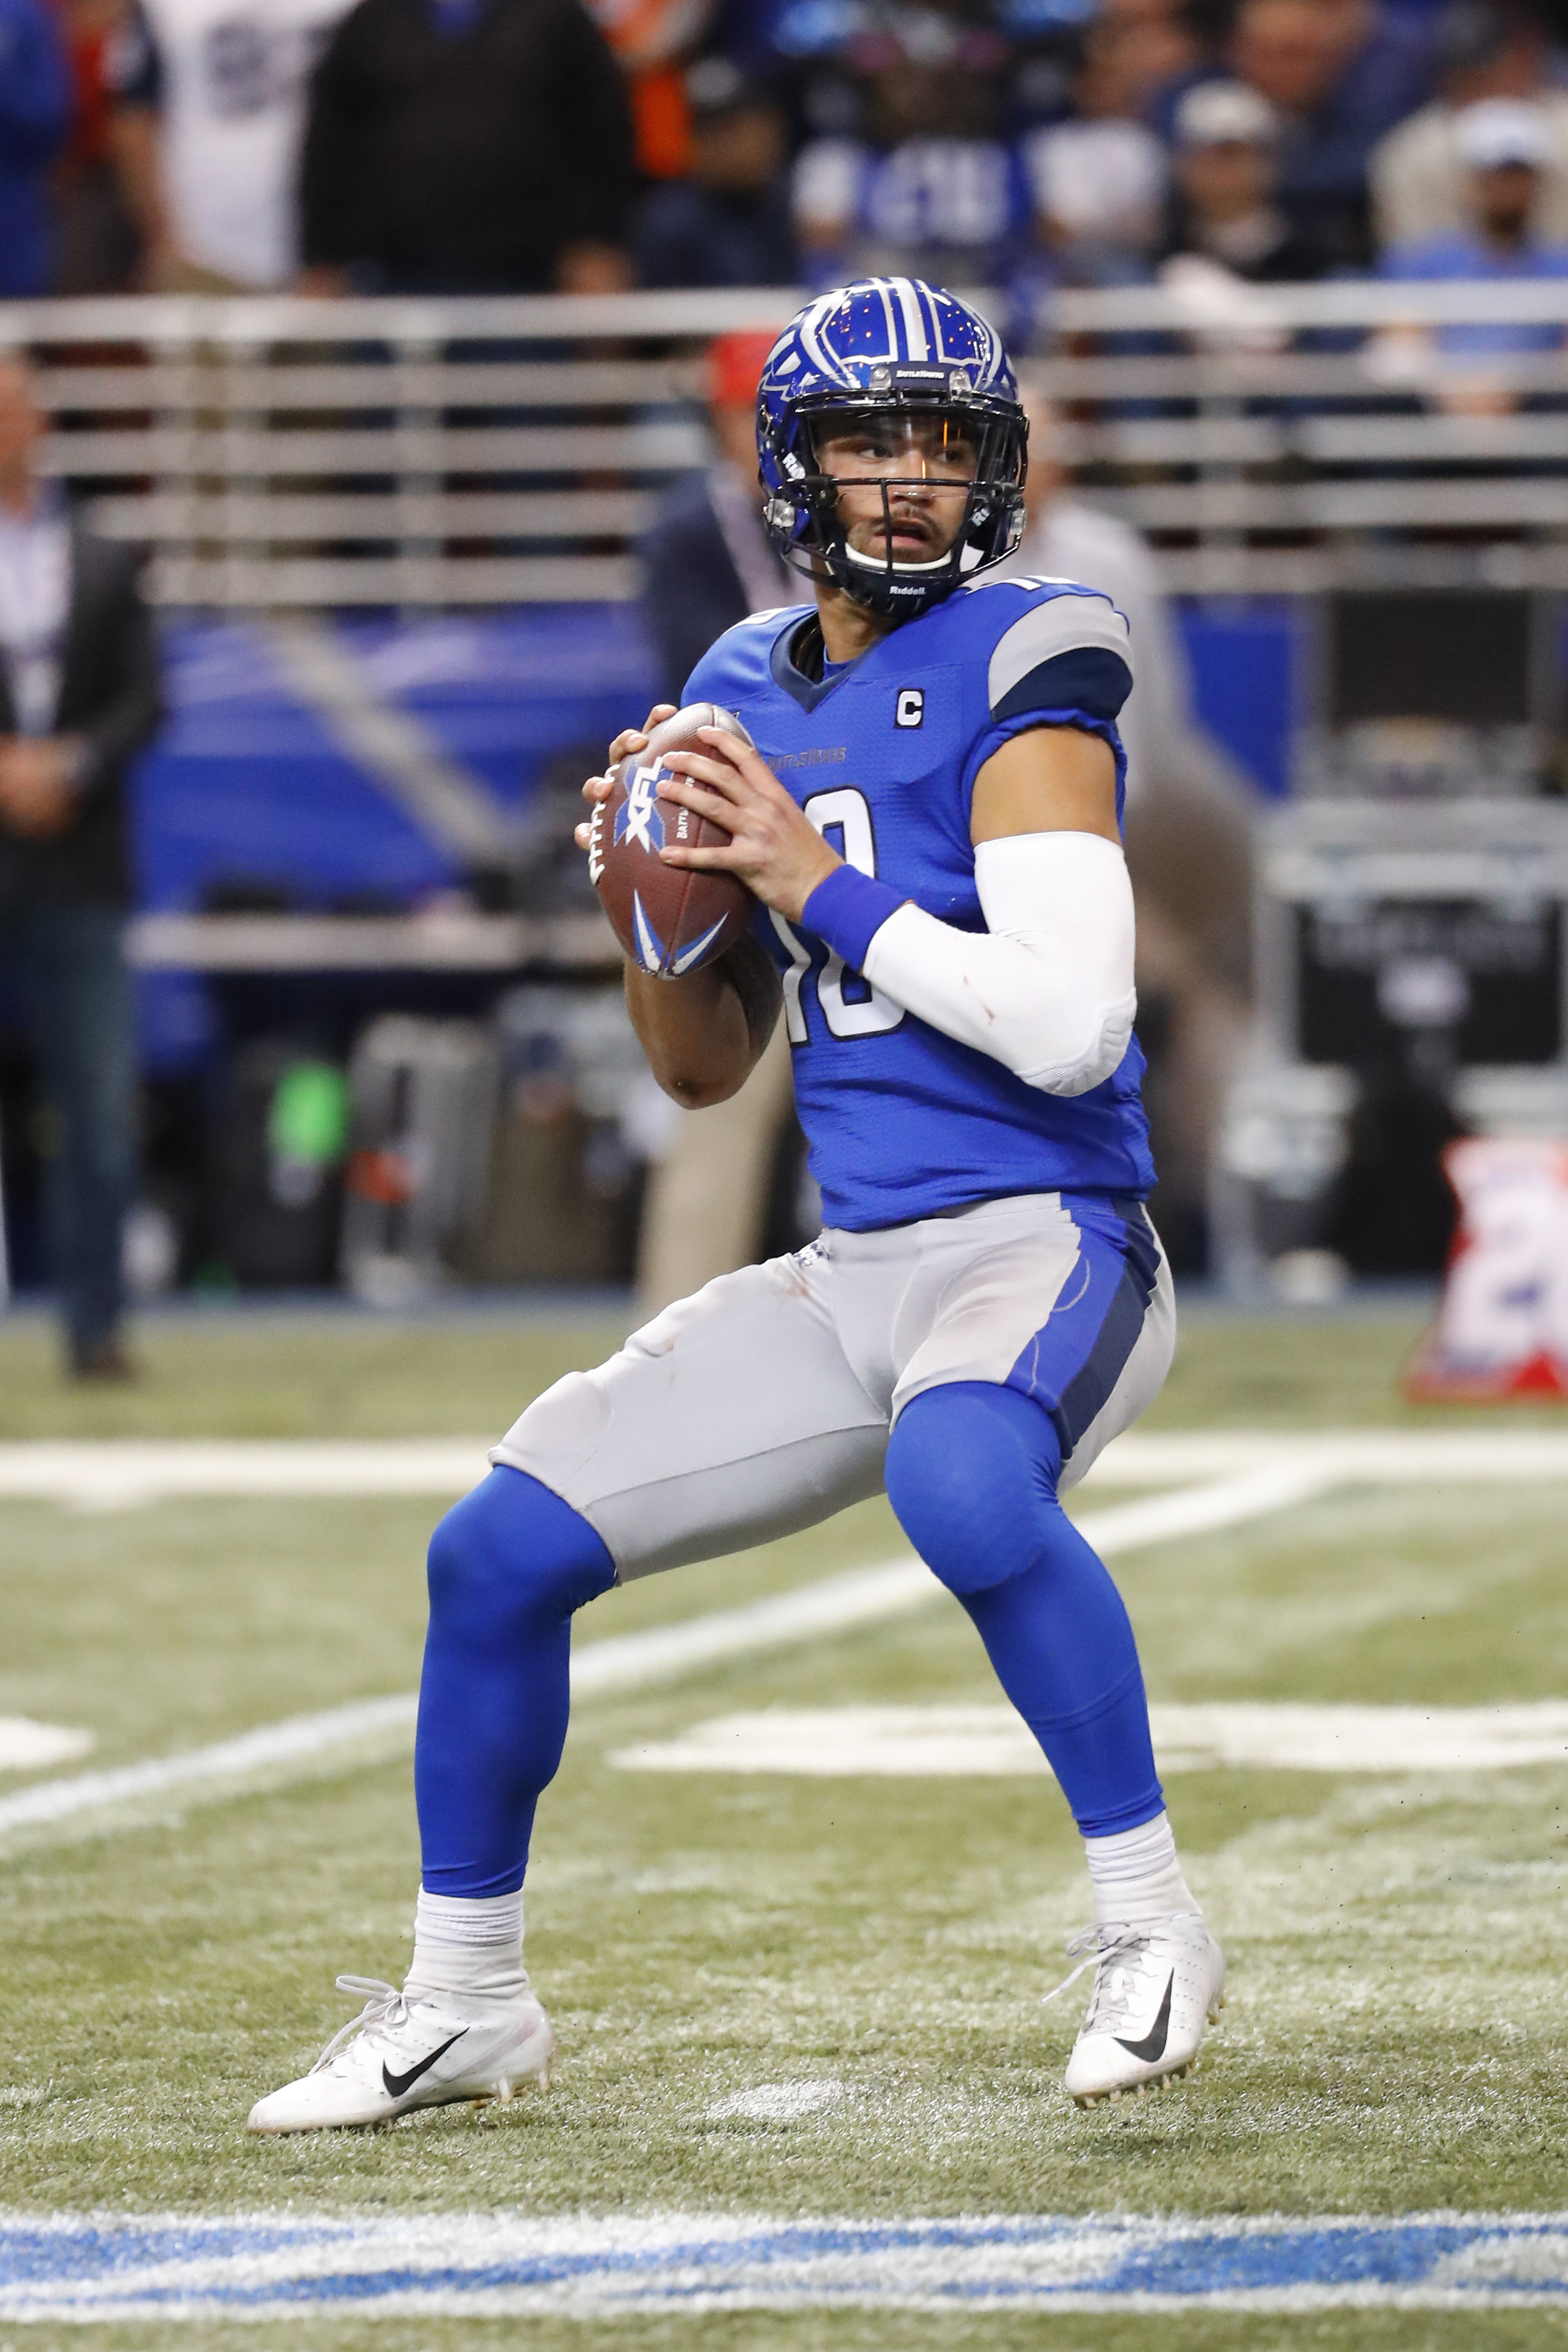 St. Louis Battlehawks quarterback Jordan Ta'Amu drops back for a pass during the second half of an XFL game against the NY Guardians at The Dome at America's Center.